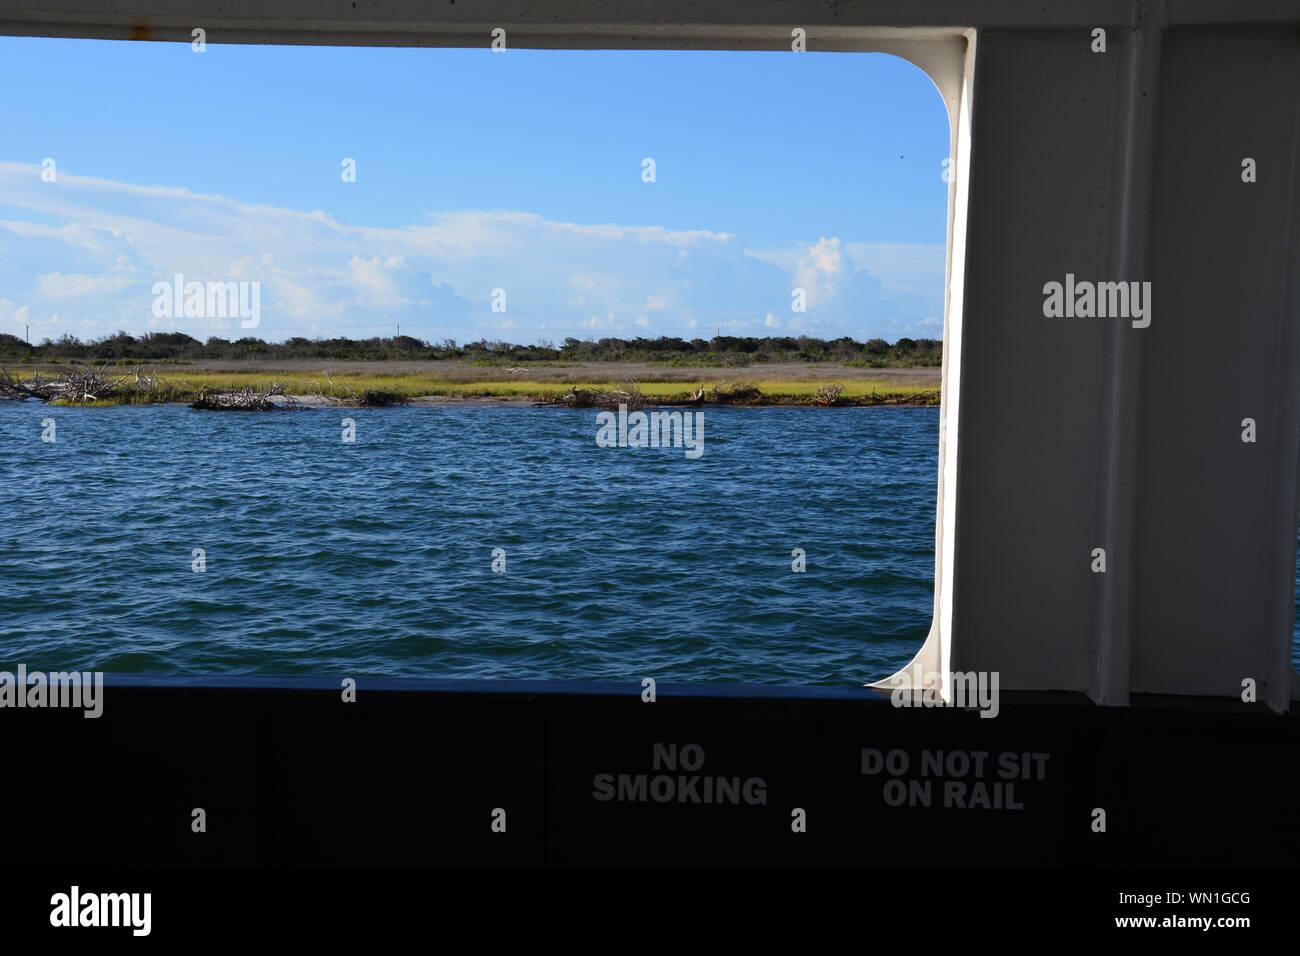 Hatteras Island passes by outside the window of the Hatteras-Ocracoke car ferry on the Outer Banks of North Carolina. Stock Photo